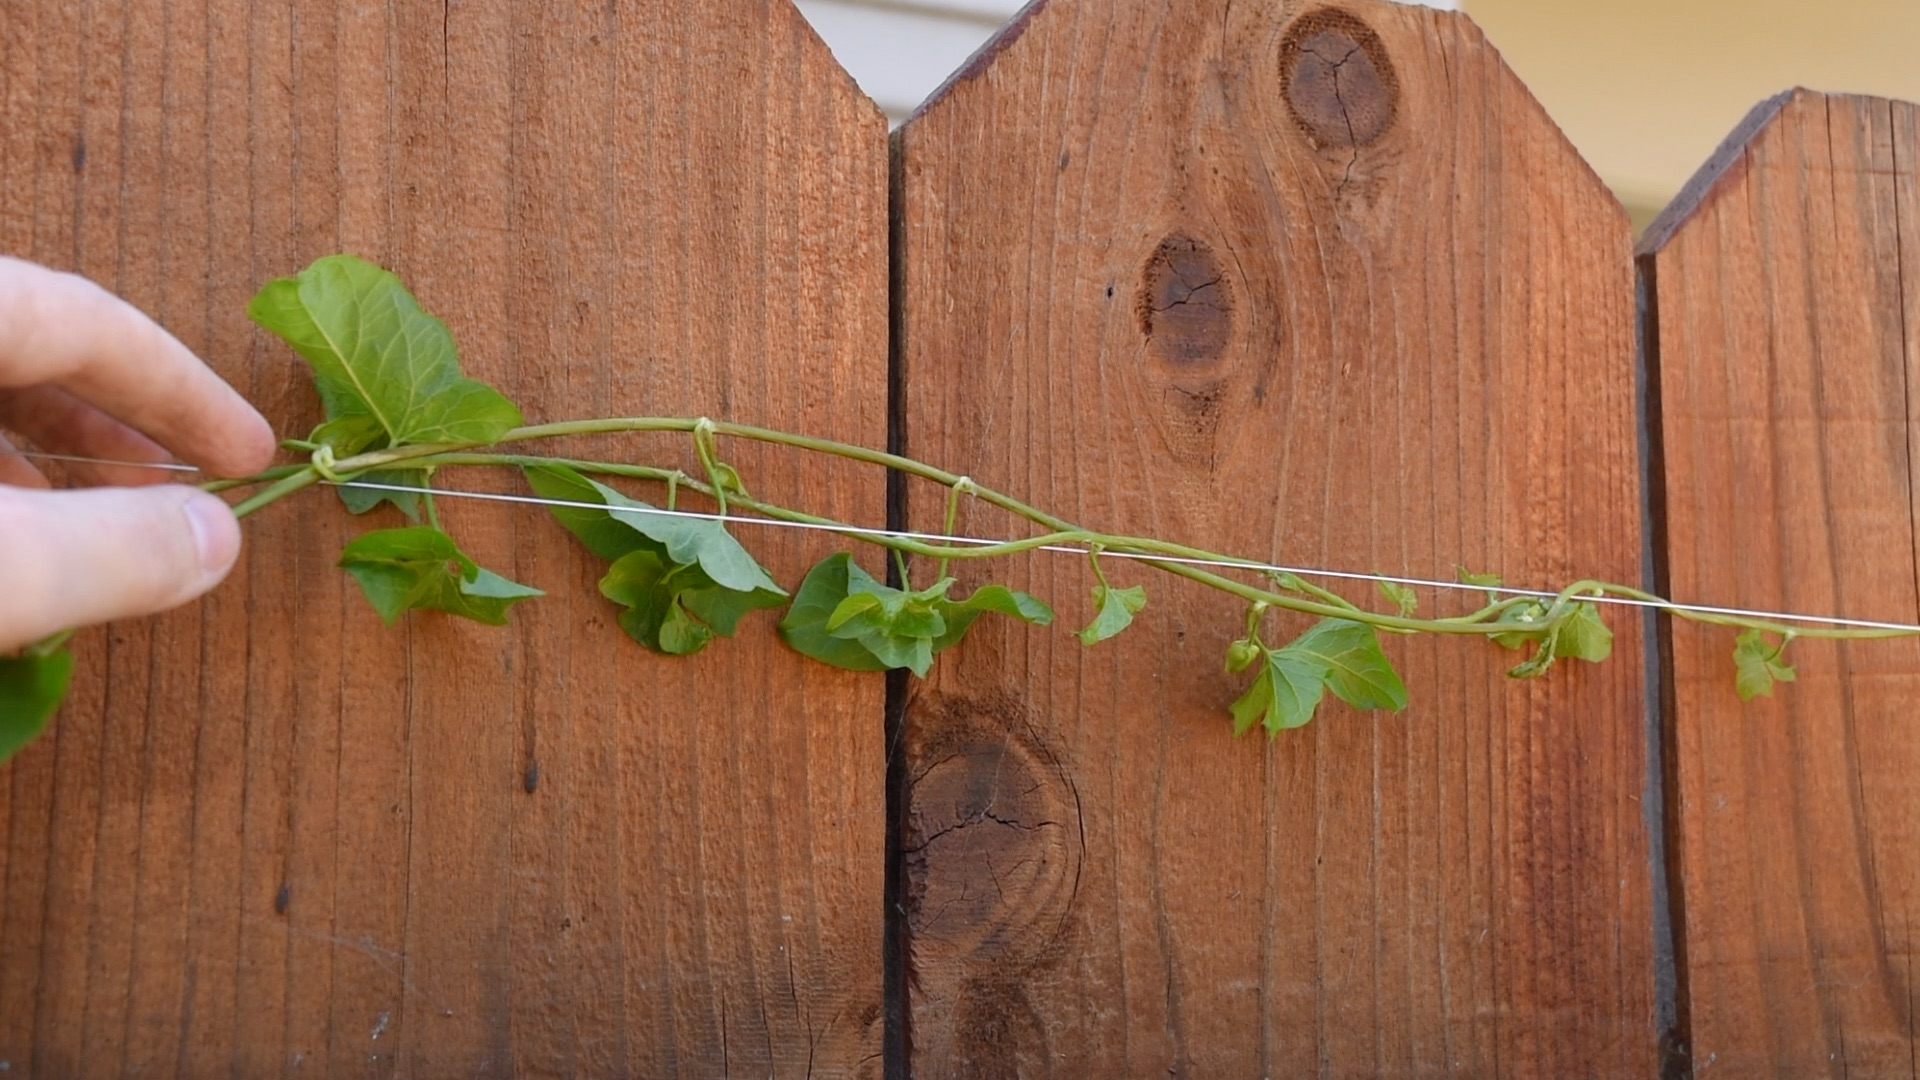 How To Train Vines To Climb A Fence A Video The Gold Hive